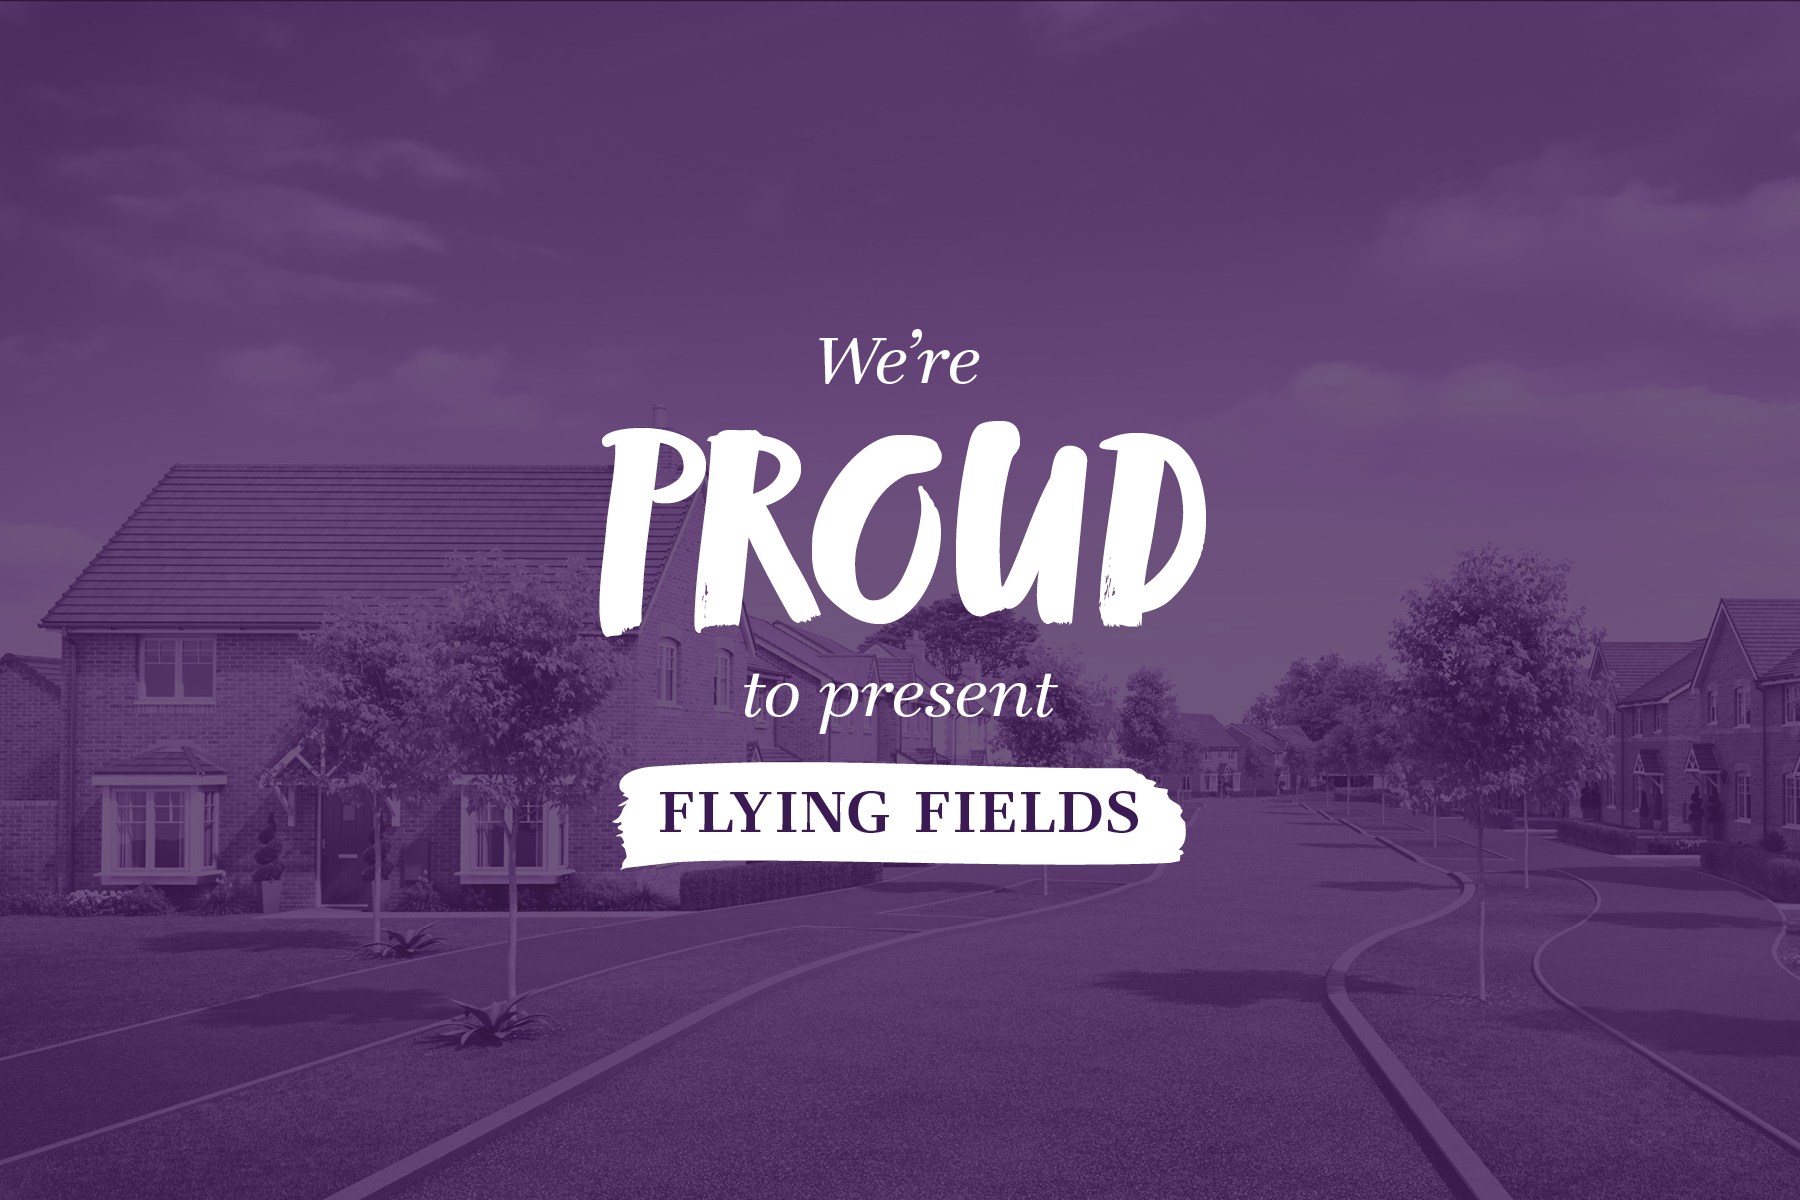 50388_TWM - Proud carousel graphics_1800x1200px_Flying-Fields